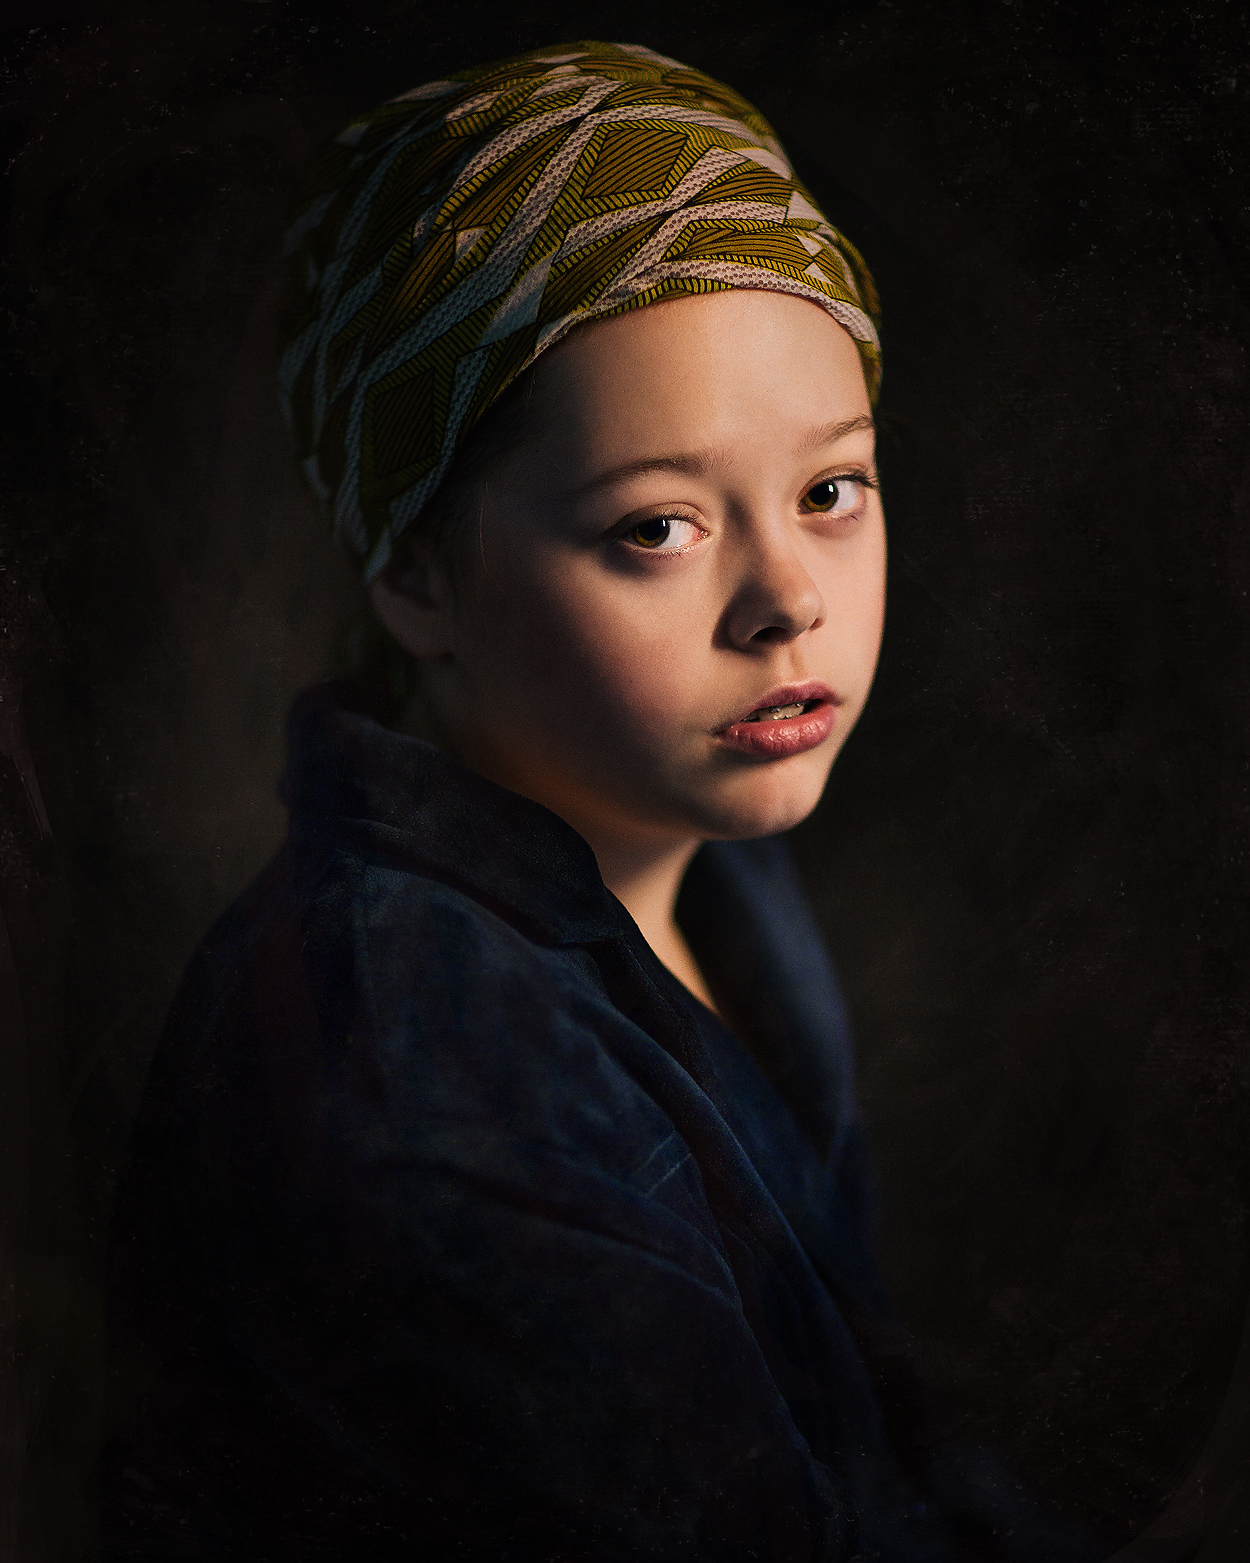 Fine art portrait  based on the painting the girl with the pearl earring of Johannes Vermeer by Willie Kers Photography